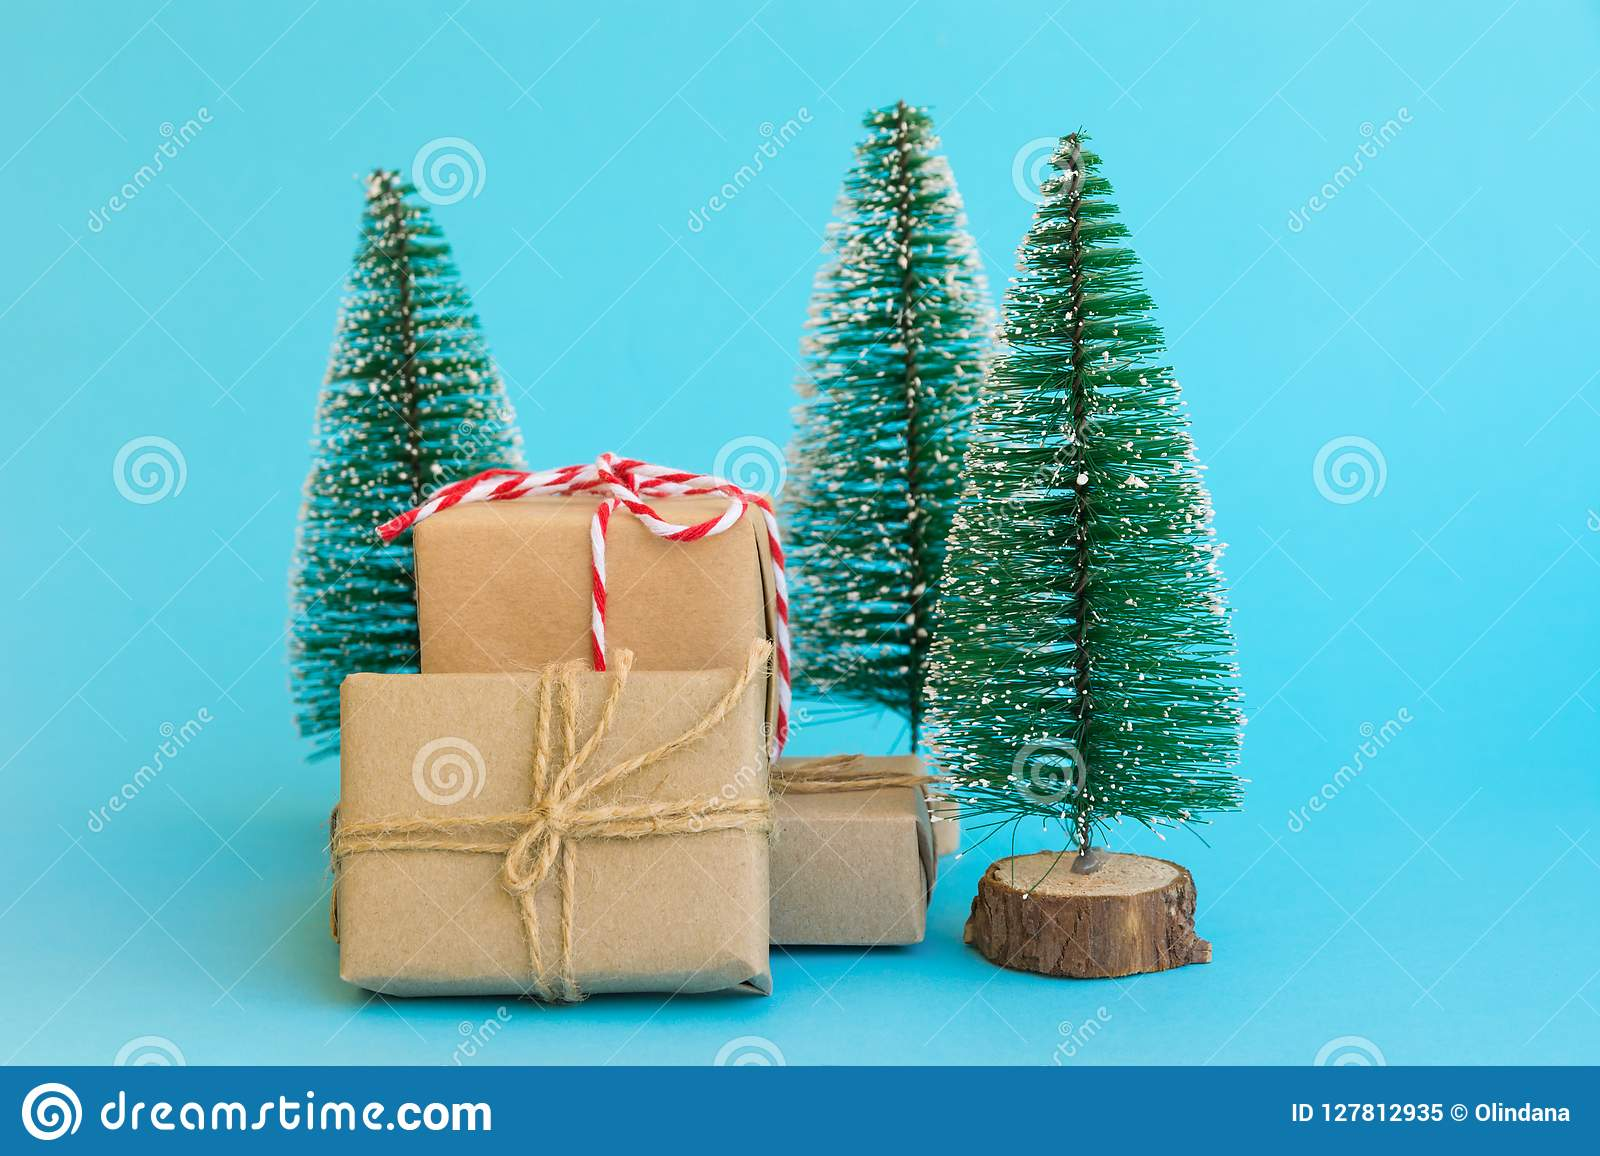 Pile Of Gift Boxes Wrapped In Craft Paper Tied With Twine Red White Ribbon Christmas Trees On Mint Blue Background New Year Stock Image Image Of Materials Copy 127812935